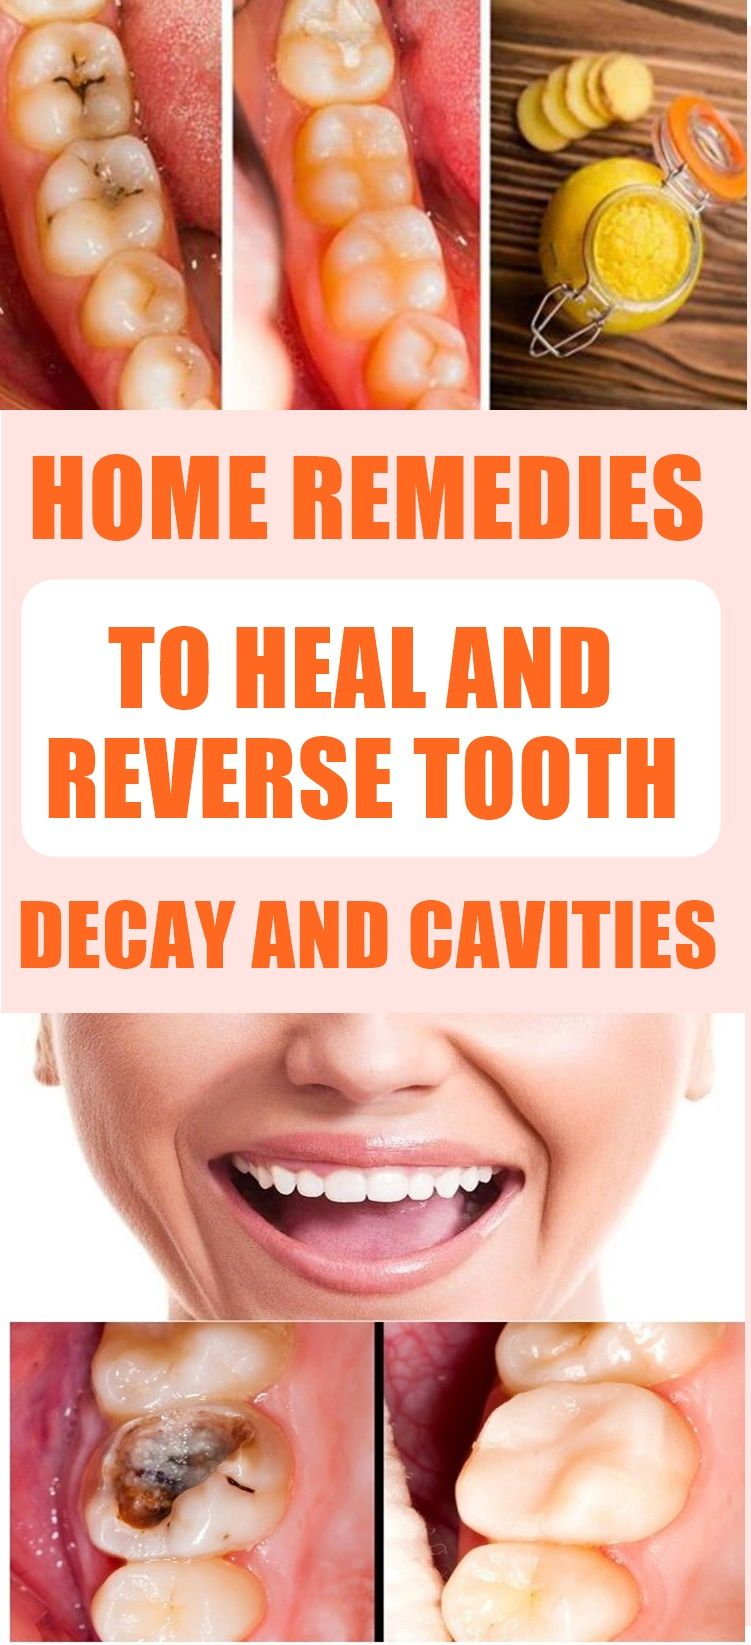 Home Remedies To Heal And Reverse Tooth Decay And Cavities